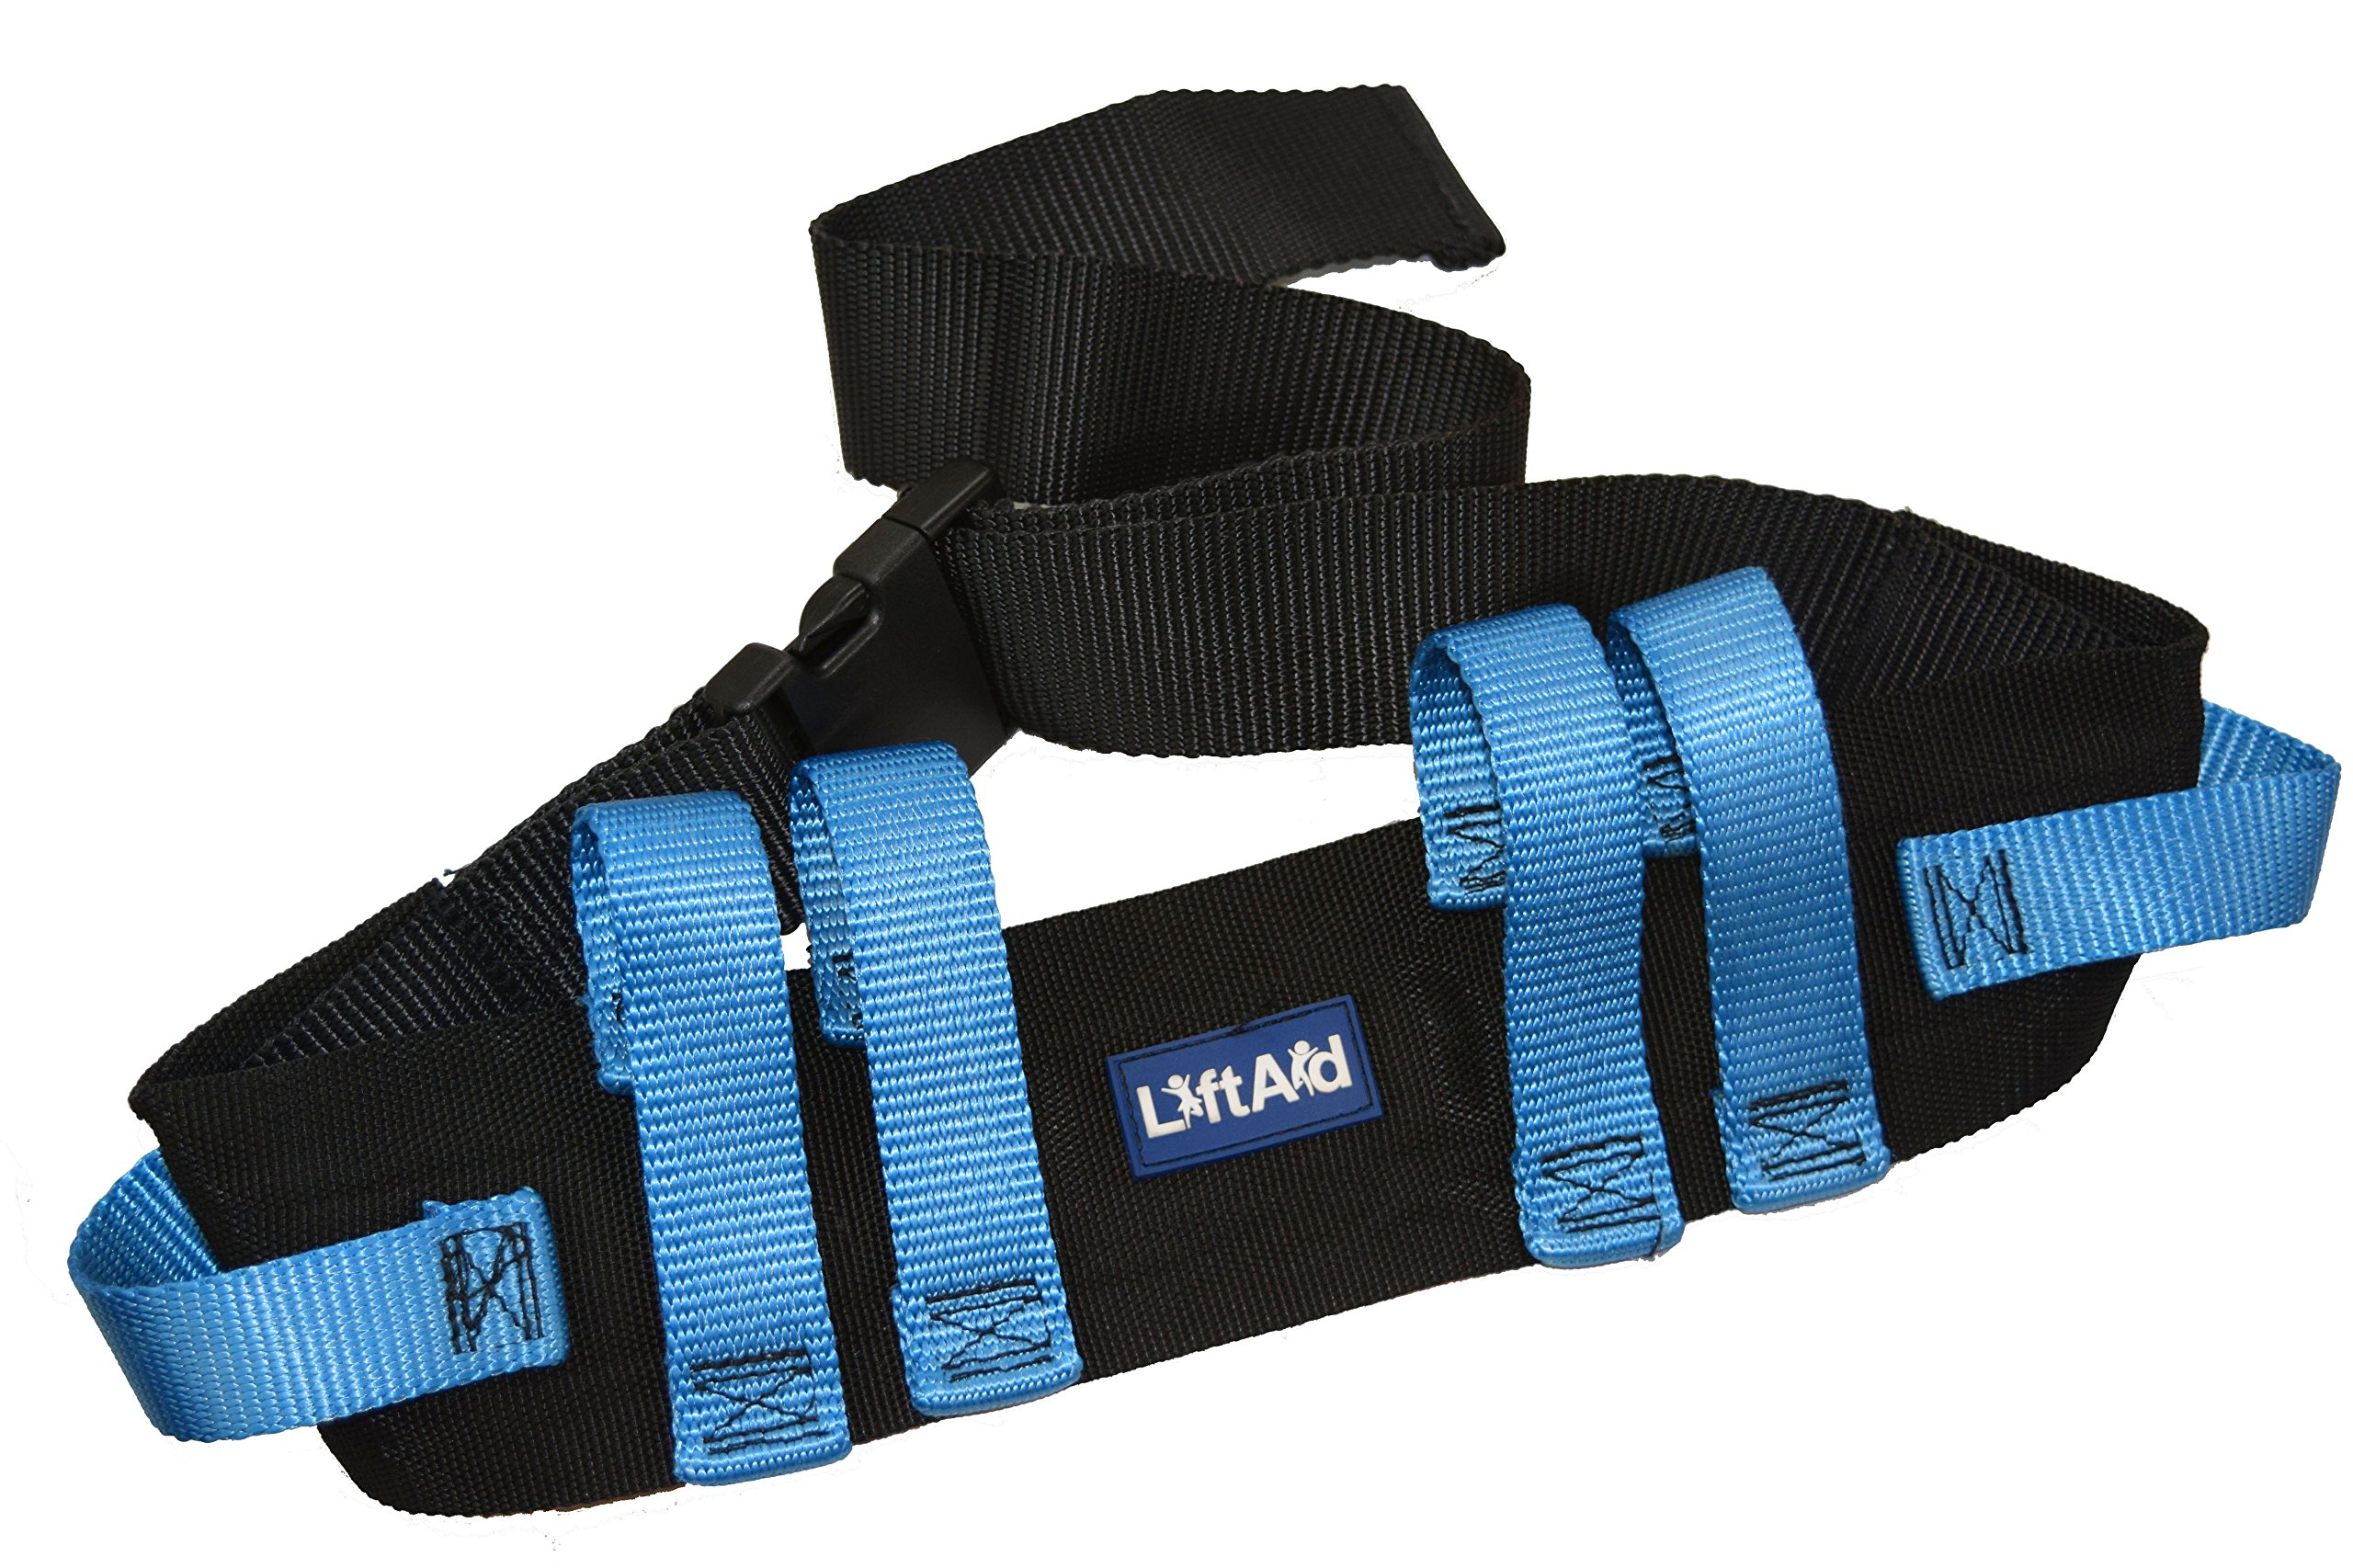 LiftAid Transfer and Walking Gait Belt with 6 Hand Grips and Quick-Release Buckle (Blue)